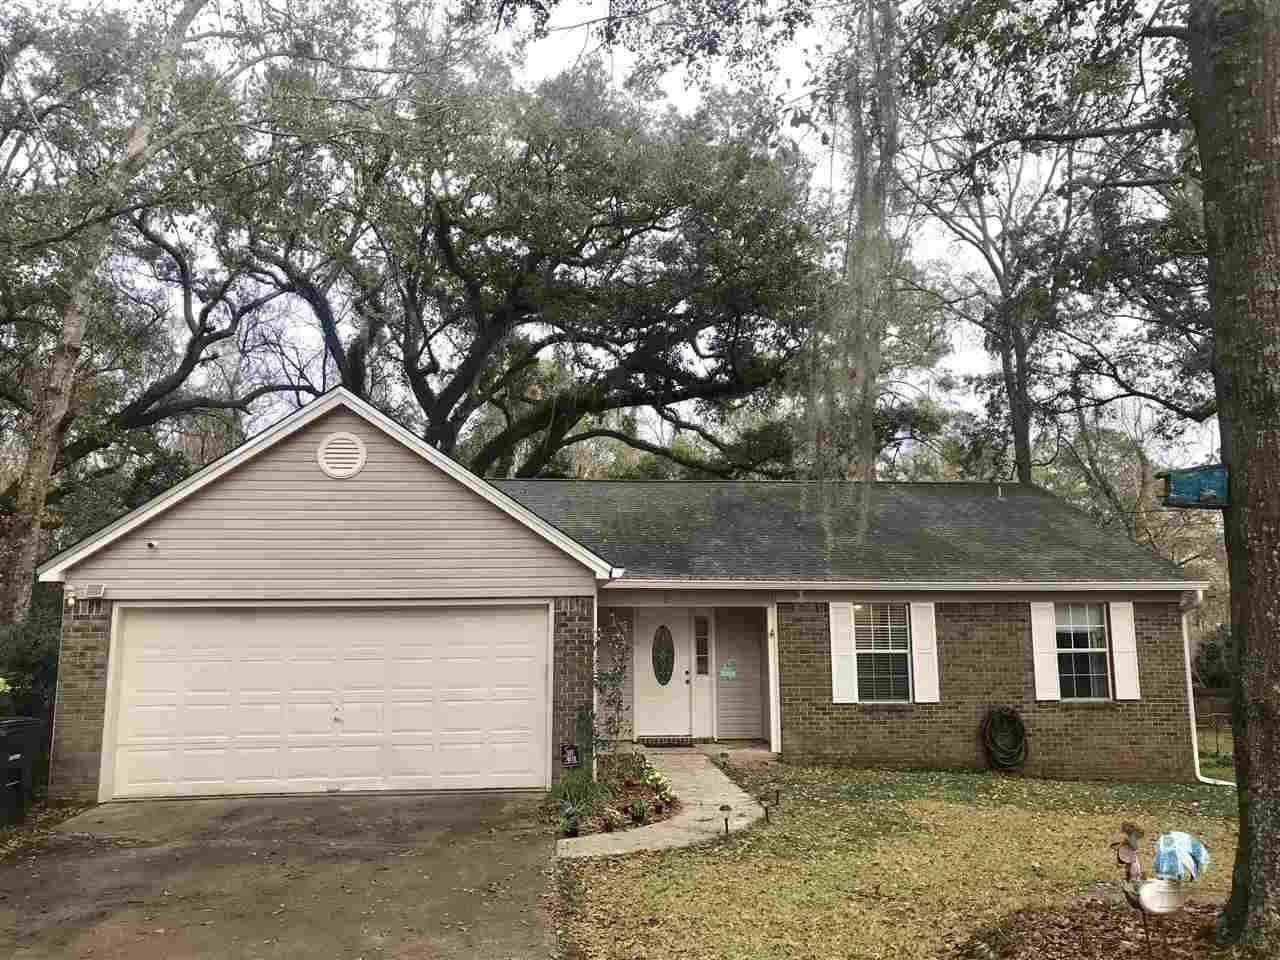 2905 Whirl A Way Trail Tallahassee, FL 32309 in Killearn Acres Photo 1